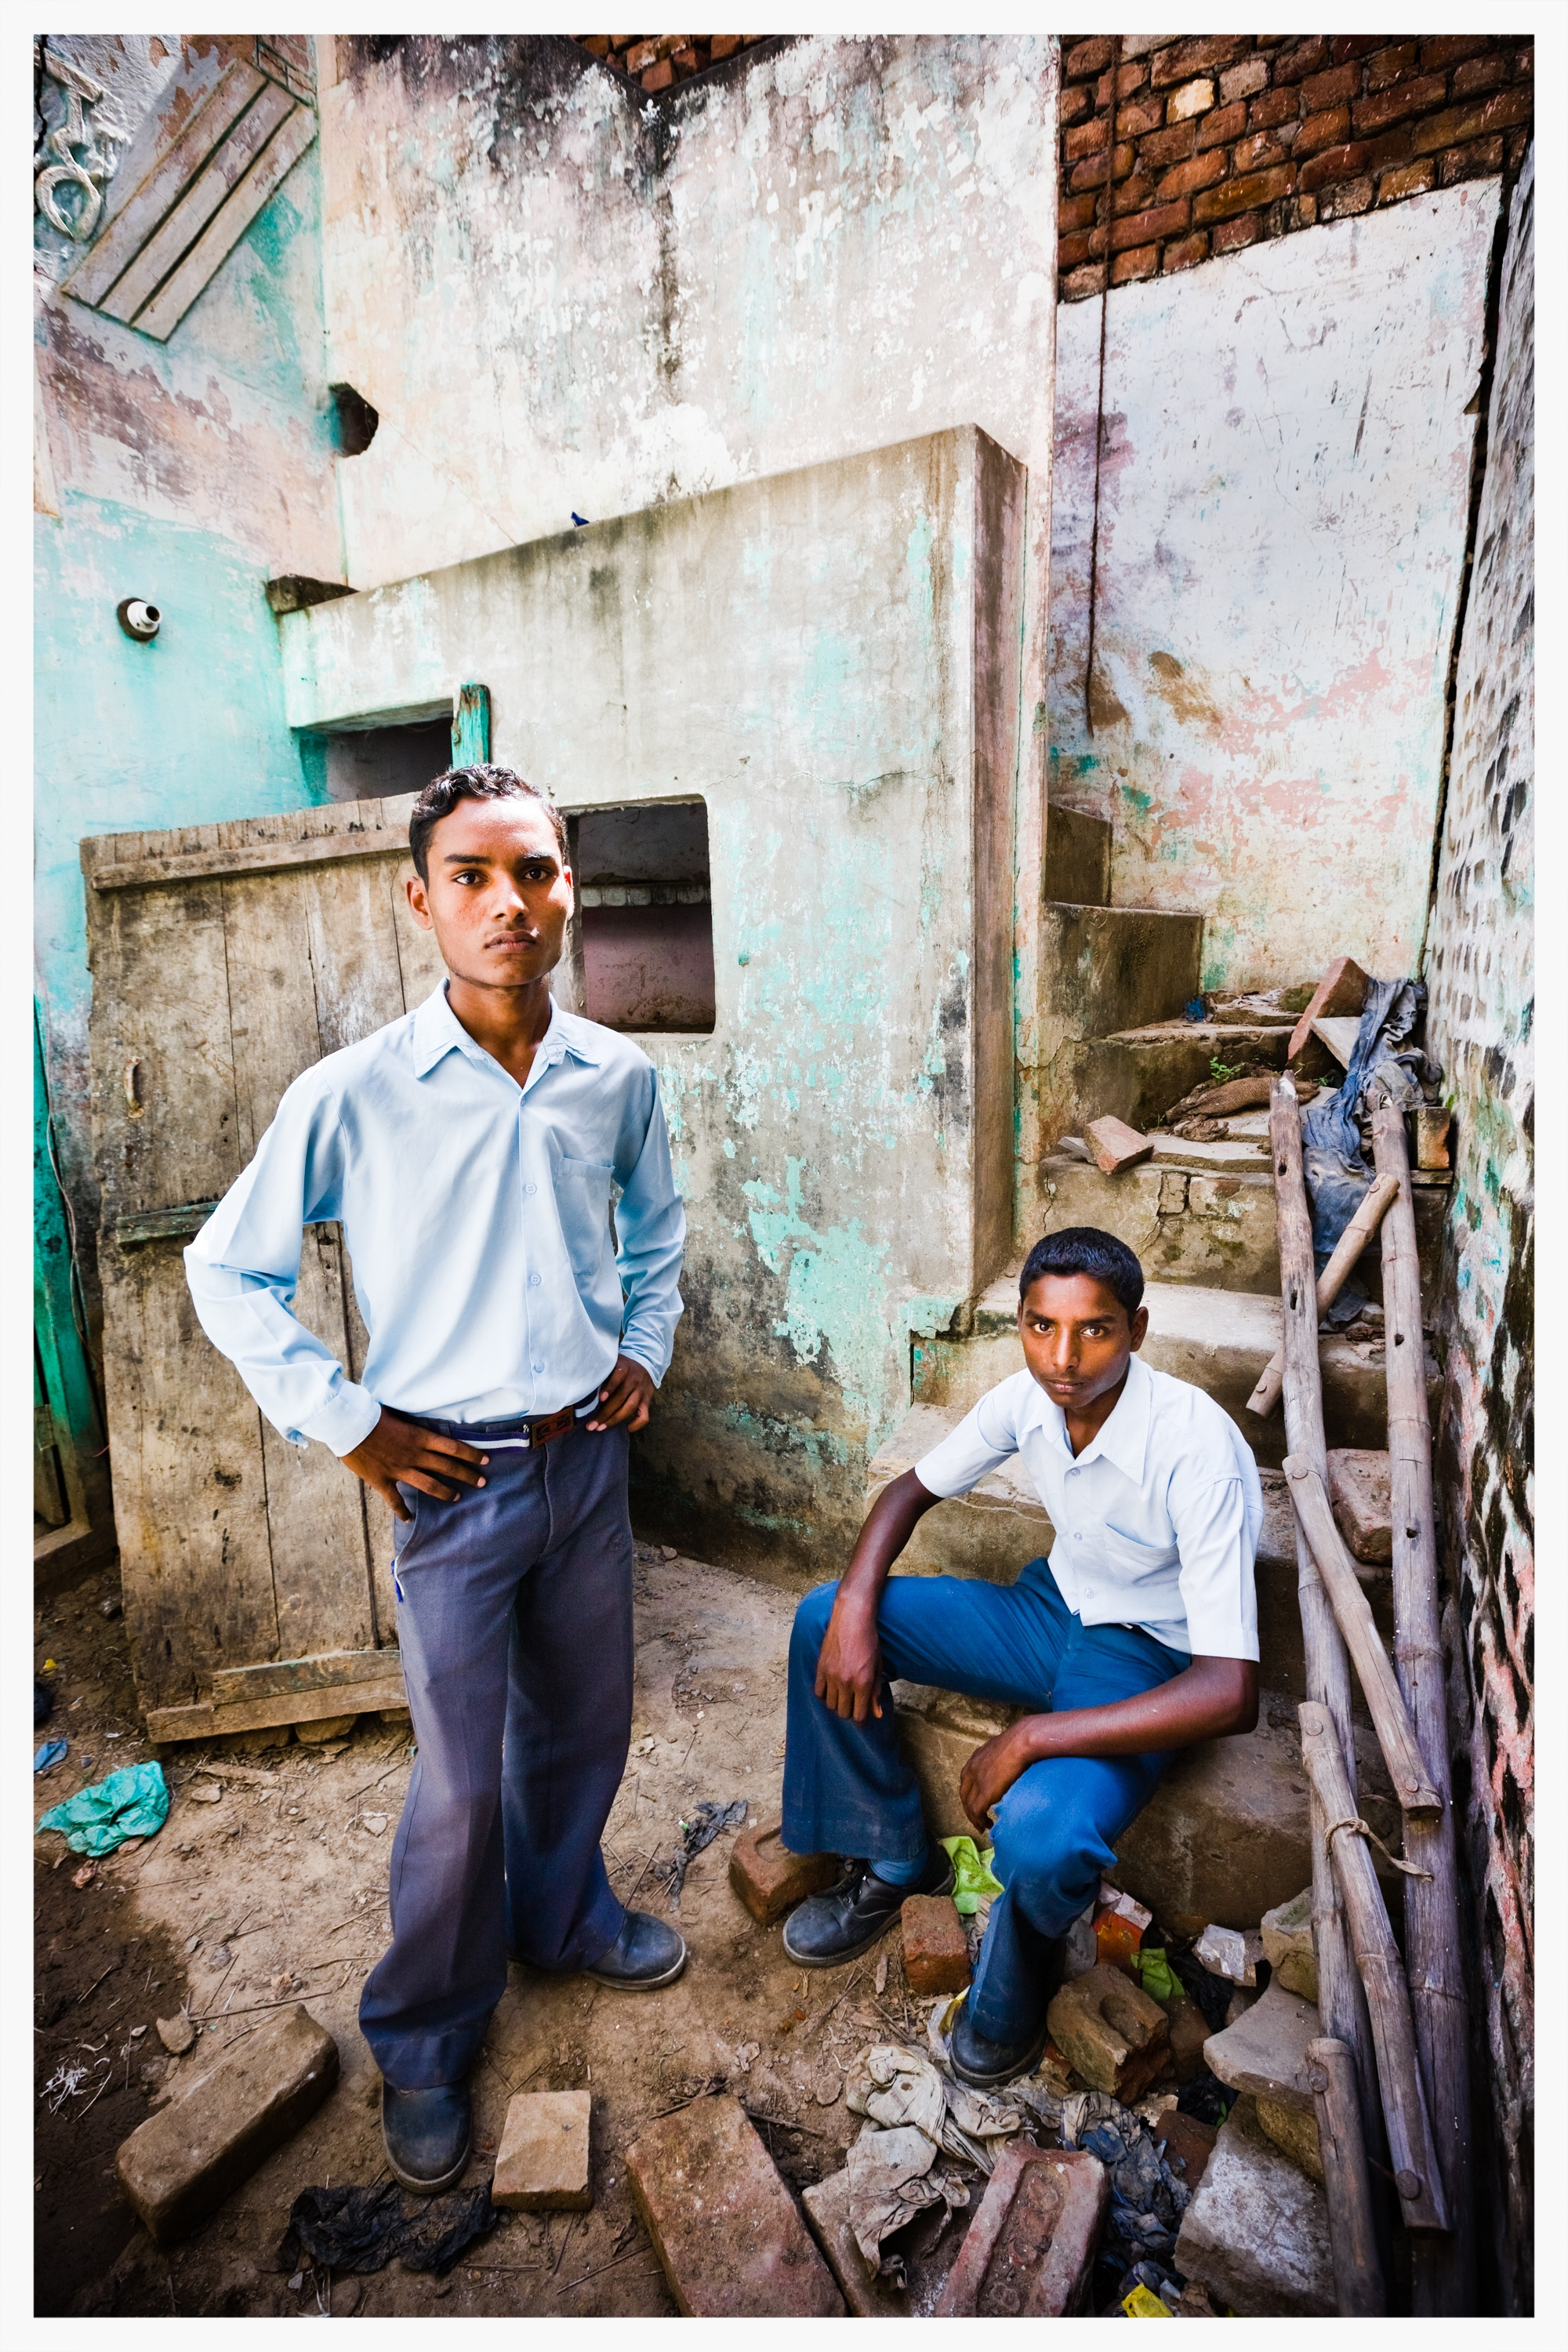 Indian Dalits,Being Untouchable. Photo: © Marcus Perkins